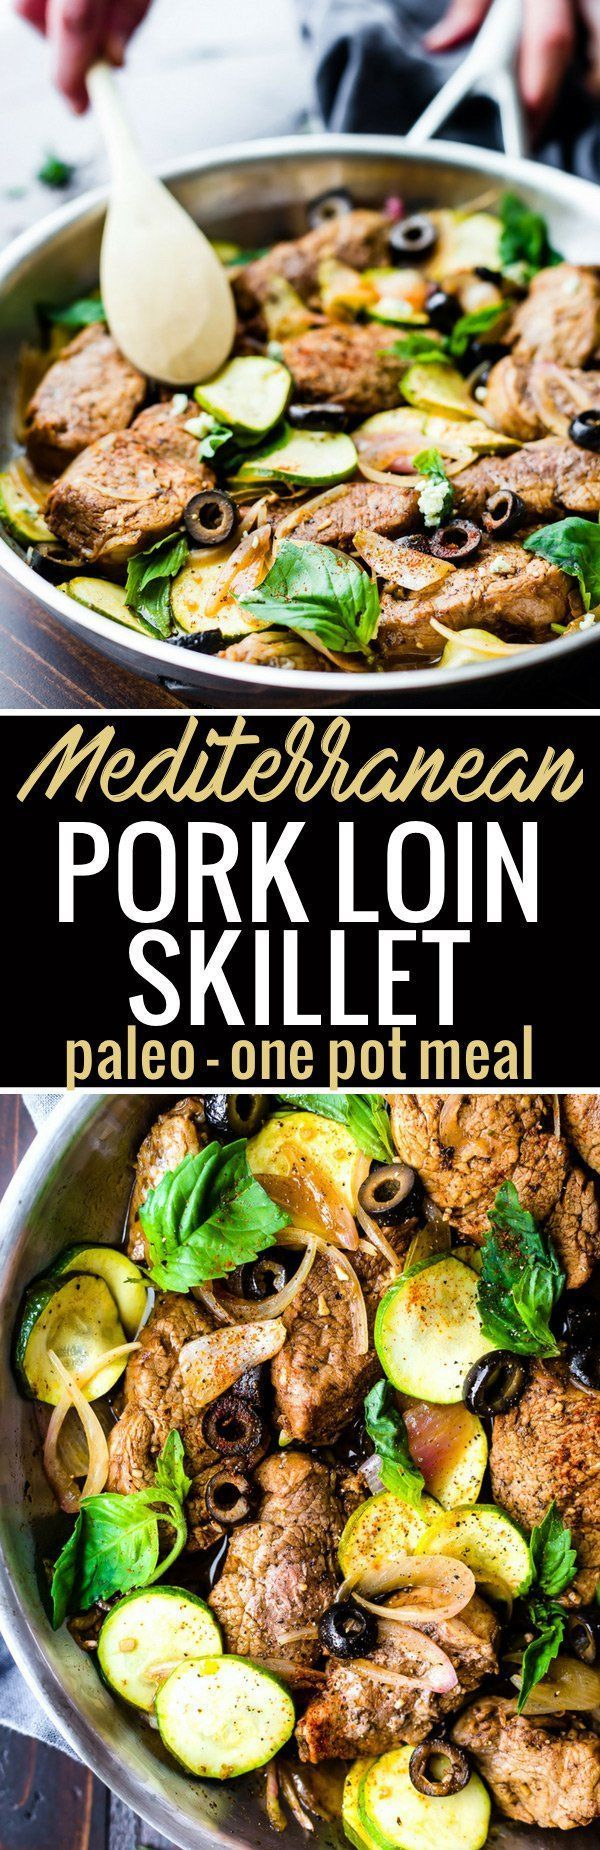 This Mediterranean Marinated Balsamic Pork Loin Skillet with vegetables makes for an easy one pan meal! VeggiePacked, Nourishing, Paleo, and ready 45minutes. You and your familywill love this flavorful pork loin skillet dish in a tangy balsamic marinade.  http://www.cottercrunch.com